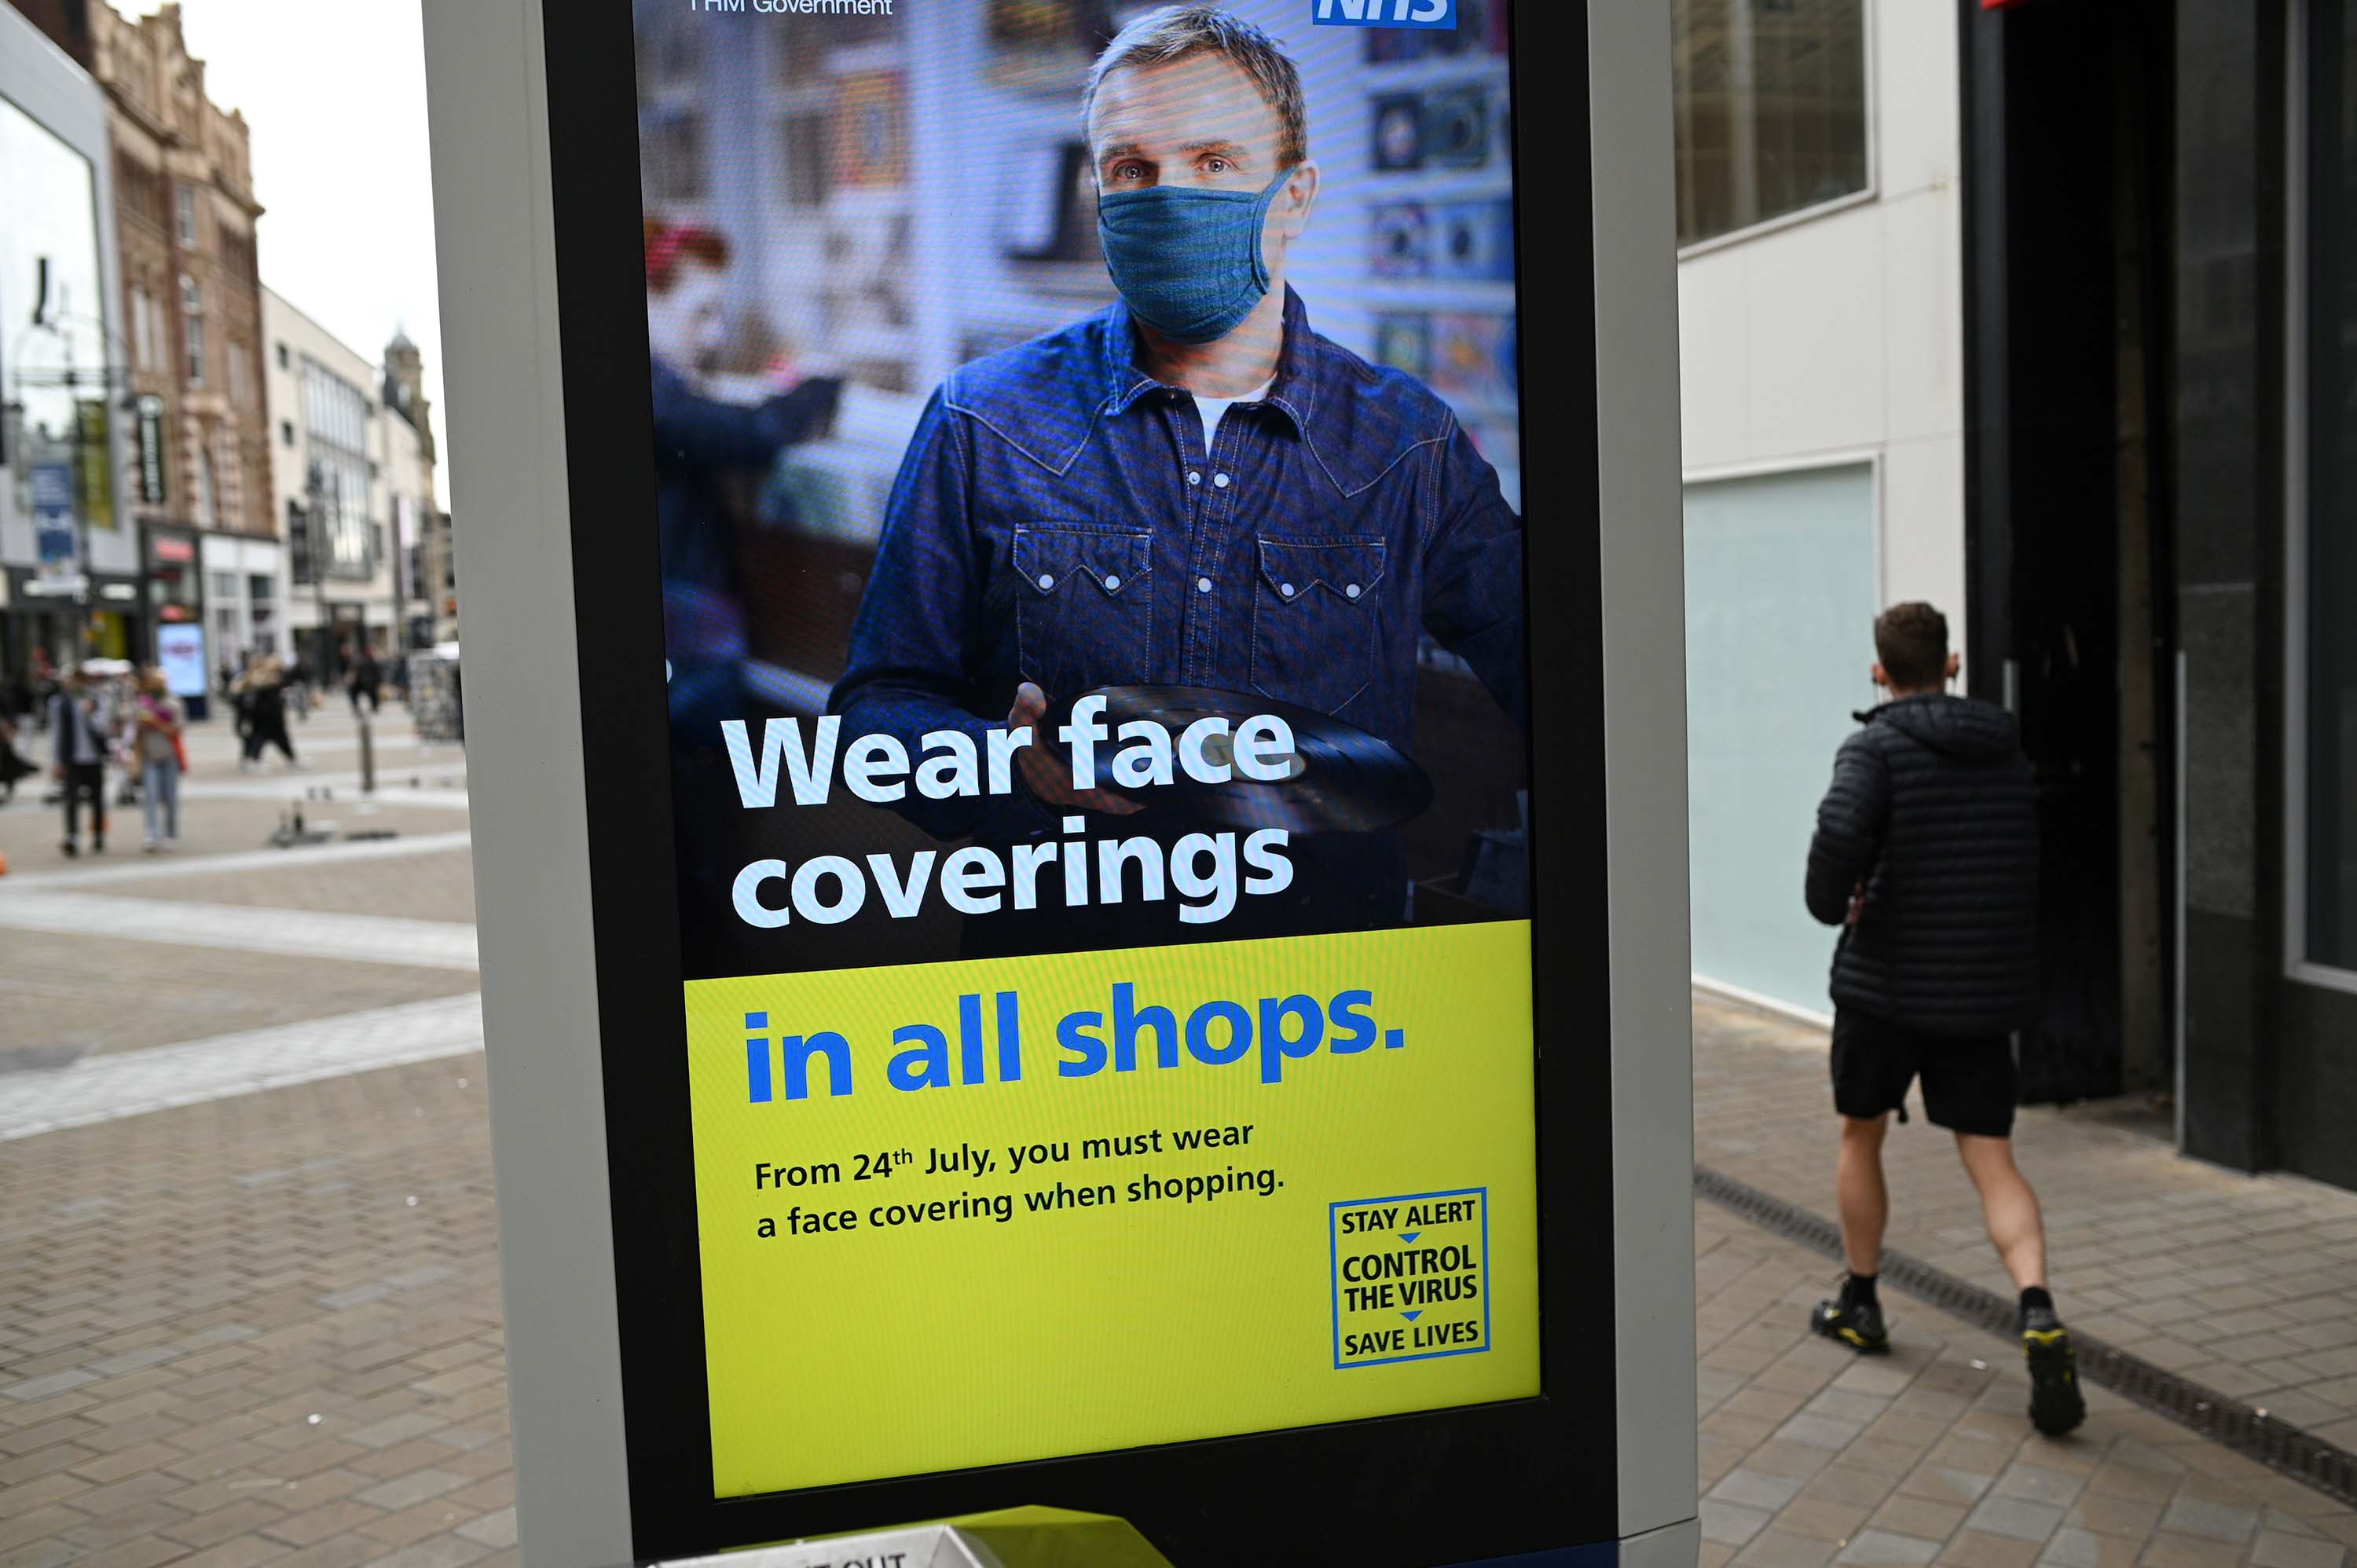 A sign calling for the wearing of face coverings in shops is displayed in Leeds, England, on July 23.